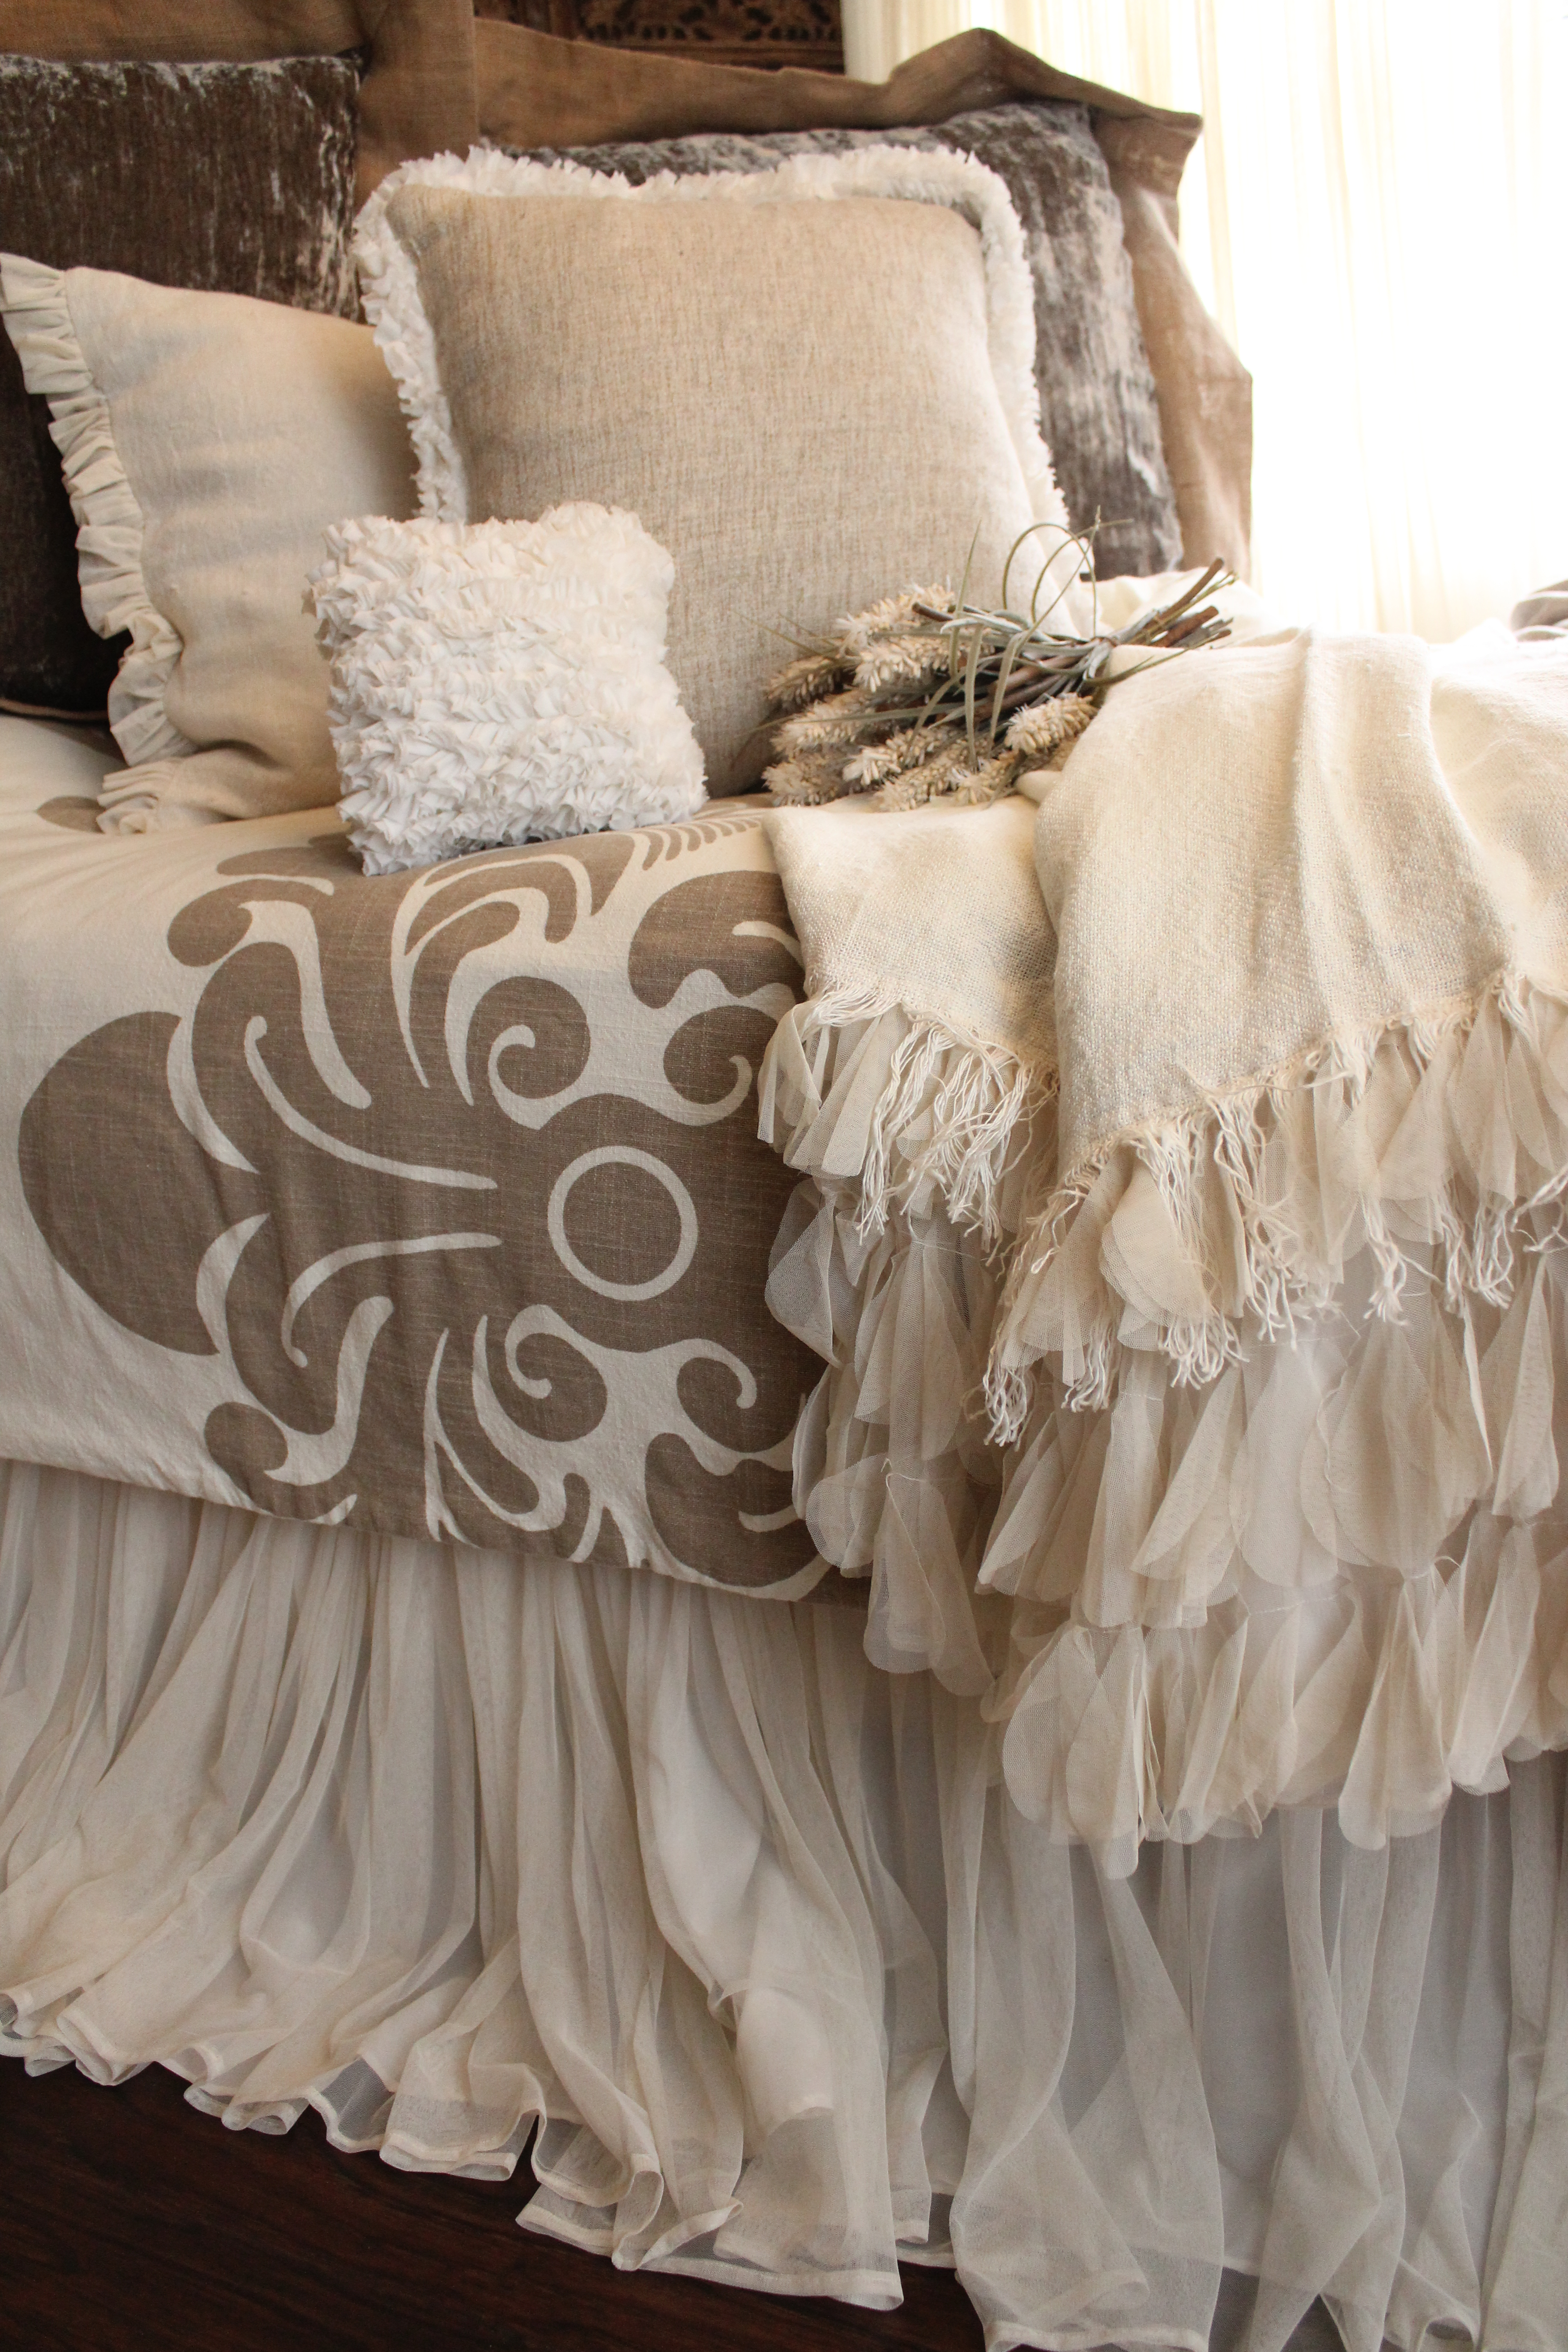 couture-dreams-bedding-postcard.jpg